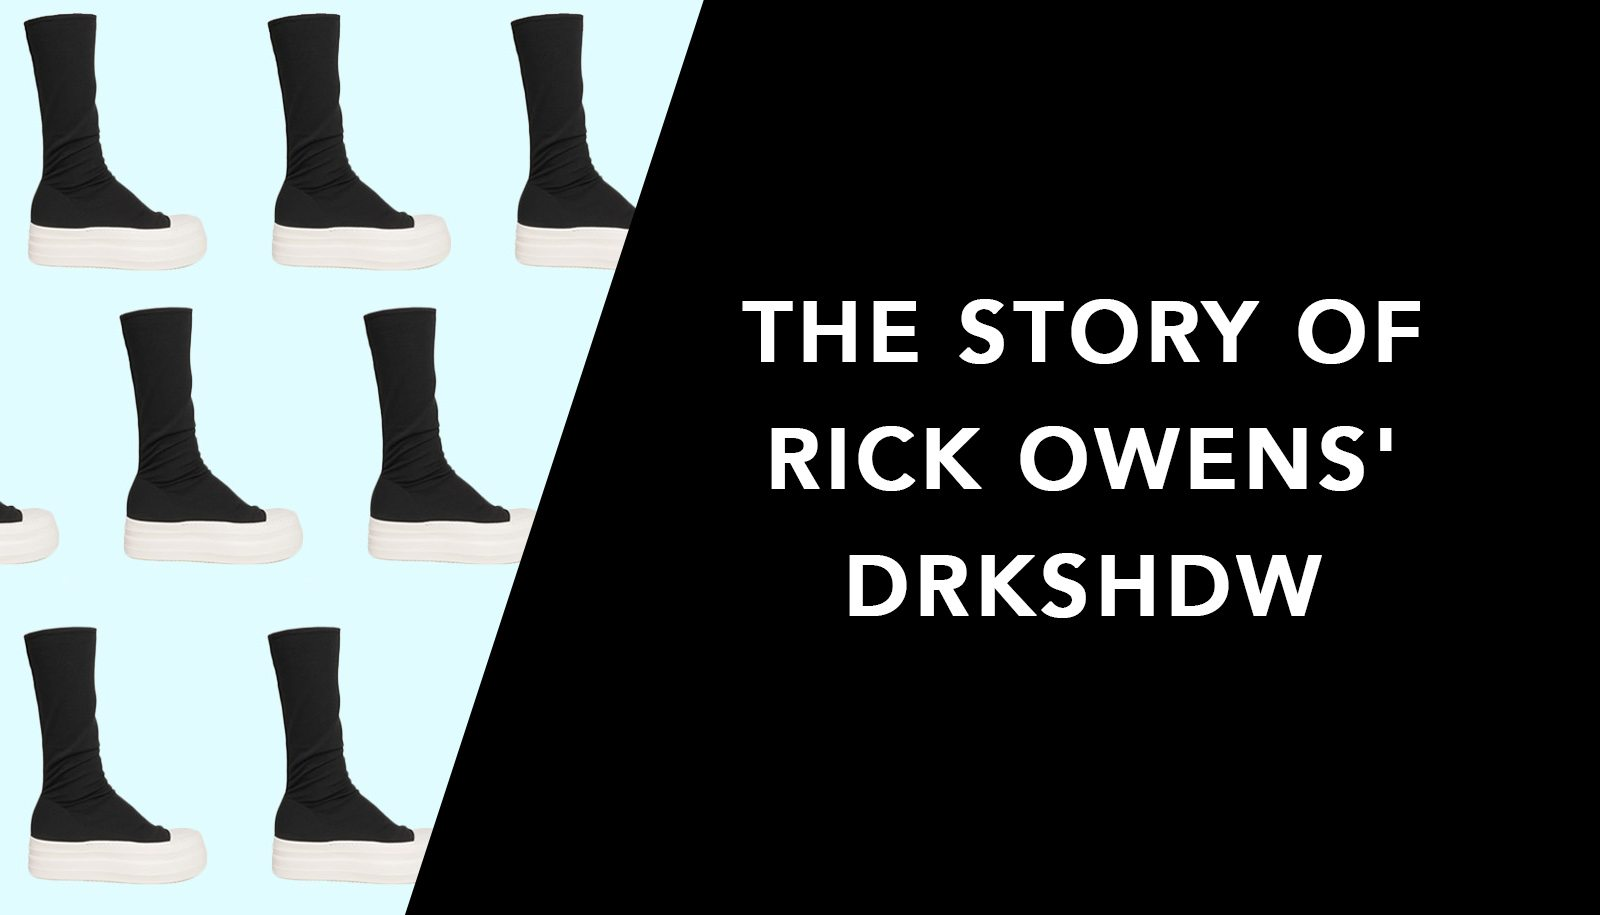 The Story of Rick Owens' DRKSHDW